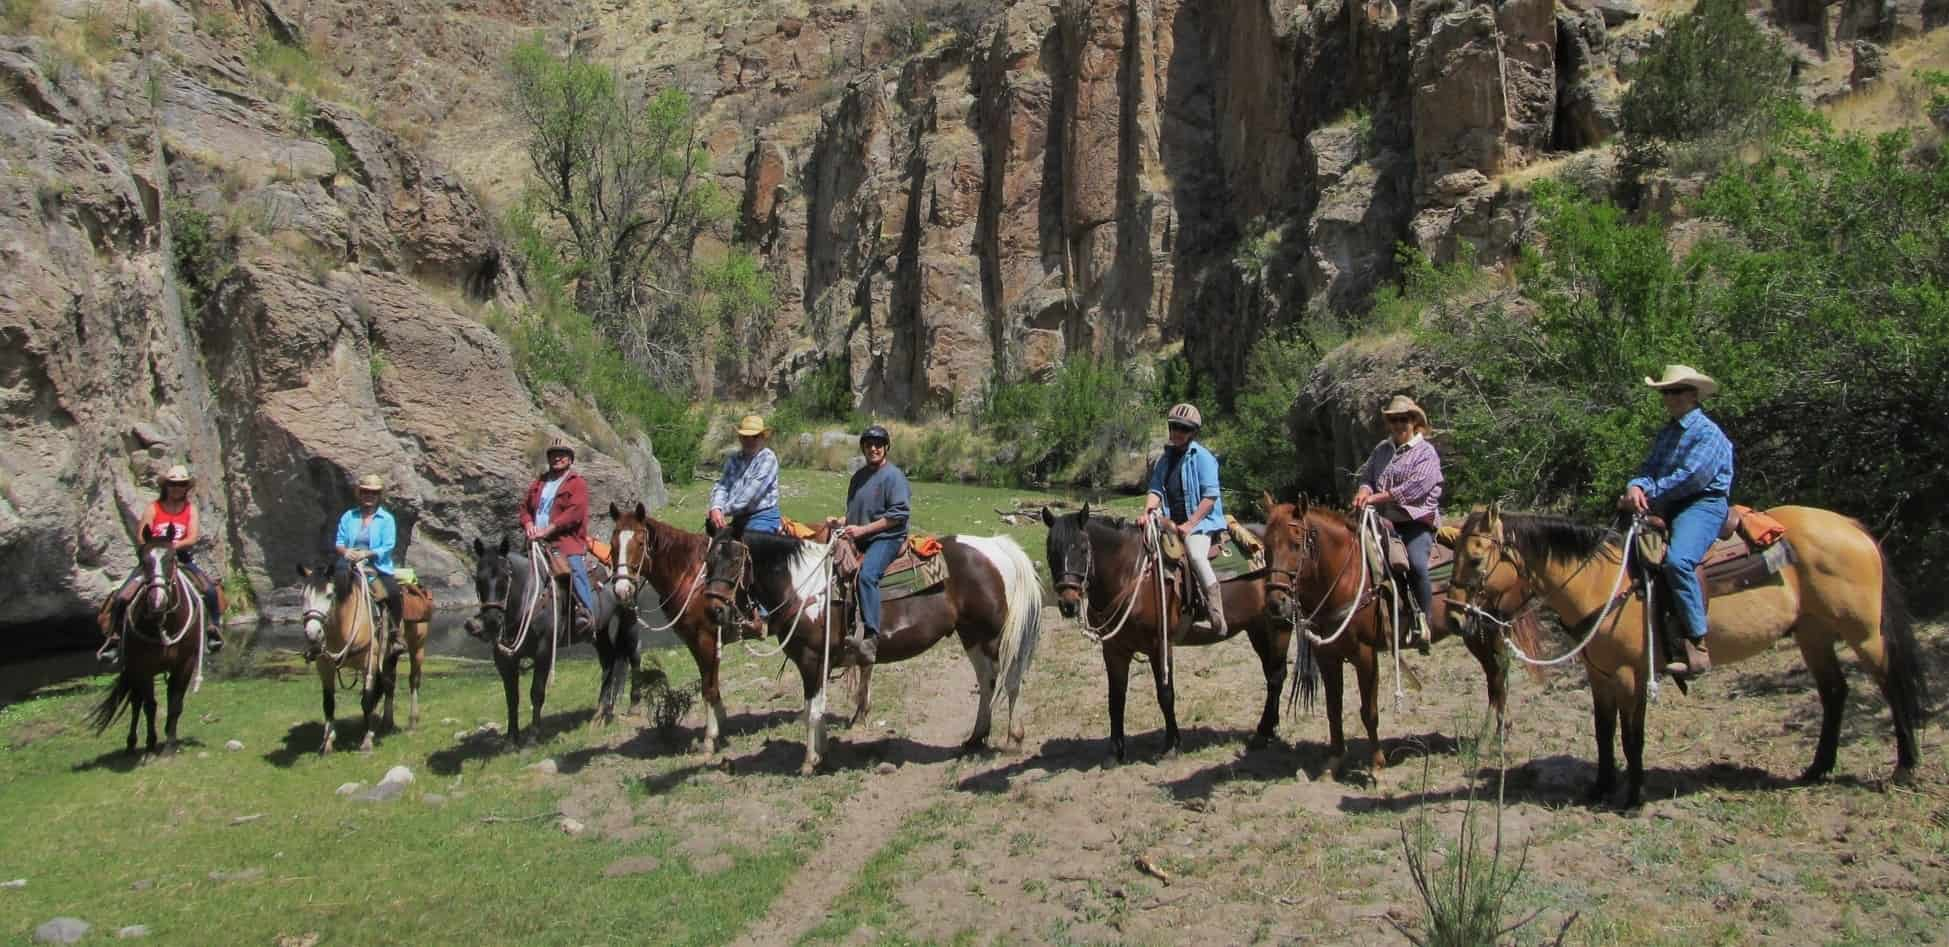 Corporate, Geronimo Trail Guest Ranch, Gila National Forest, New Mexico, Trail Riding, Horseback Riding, Dude Ranch, Guest Ranch